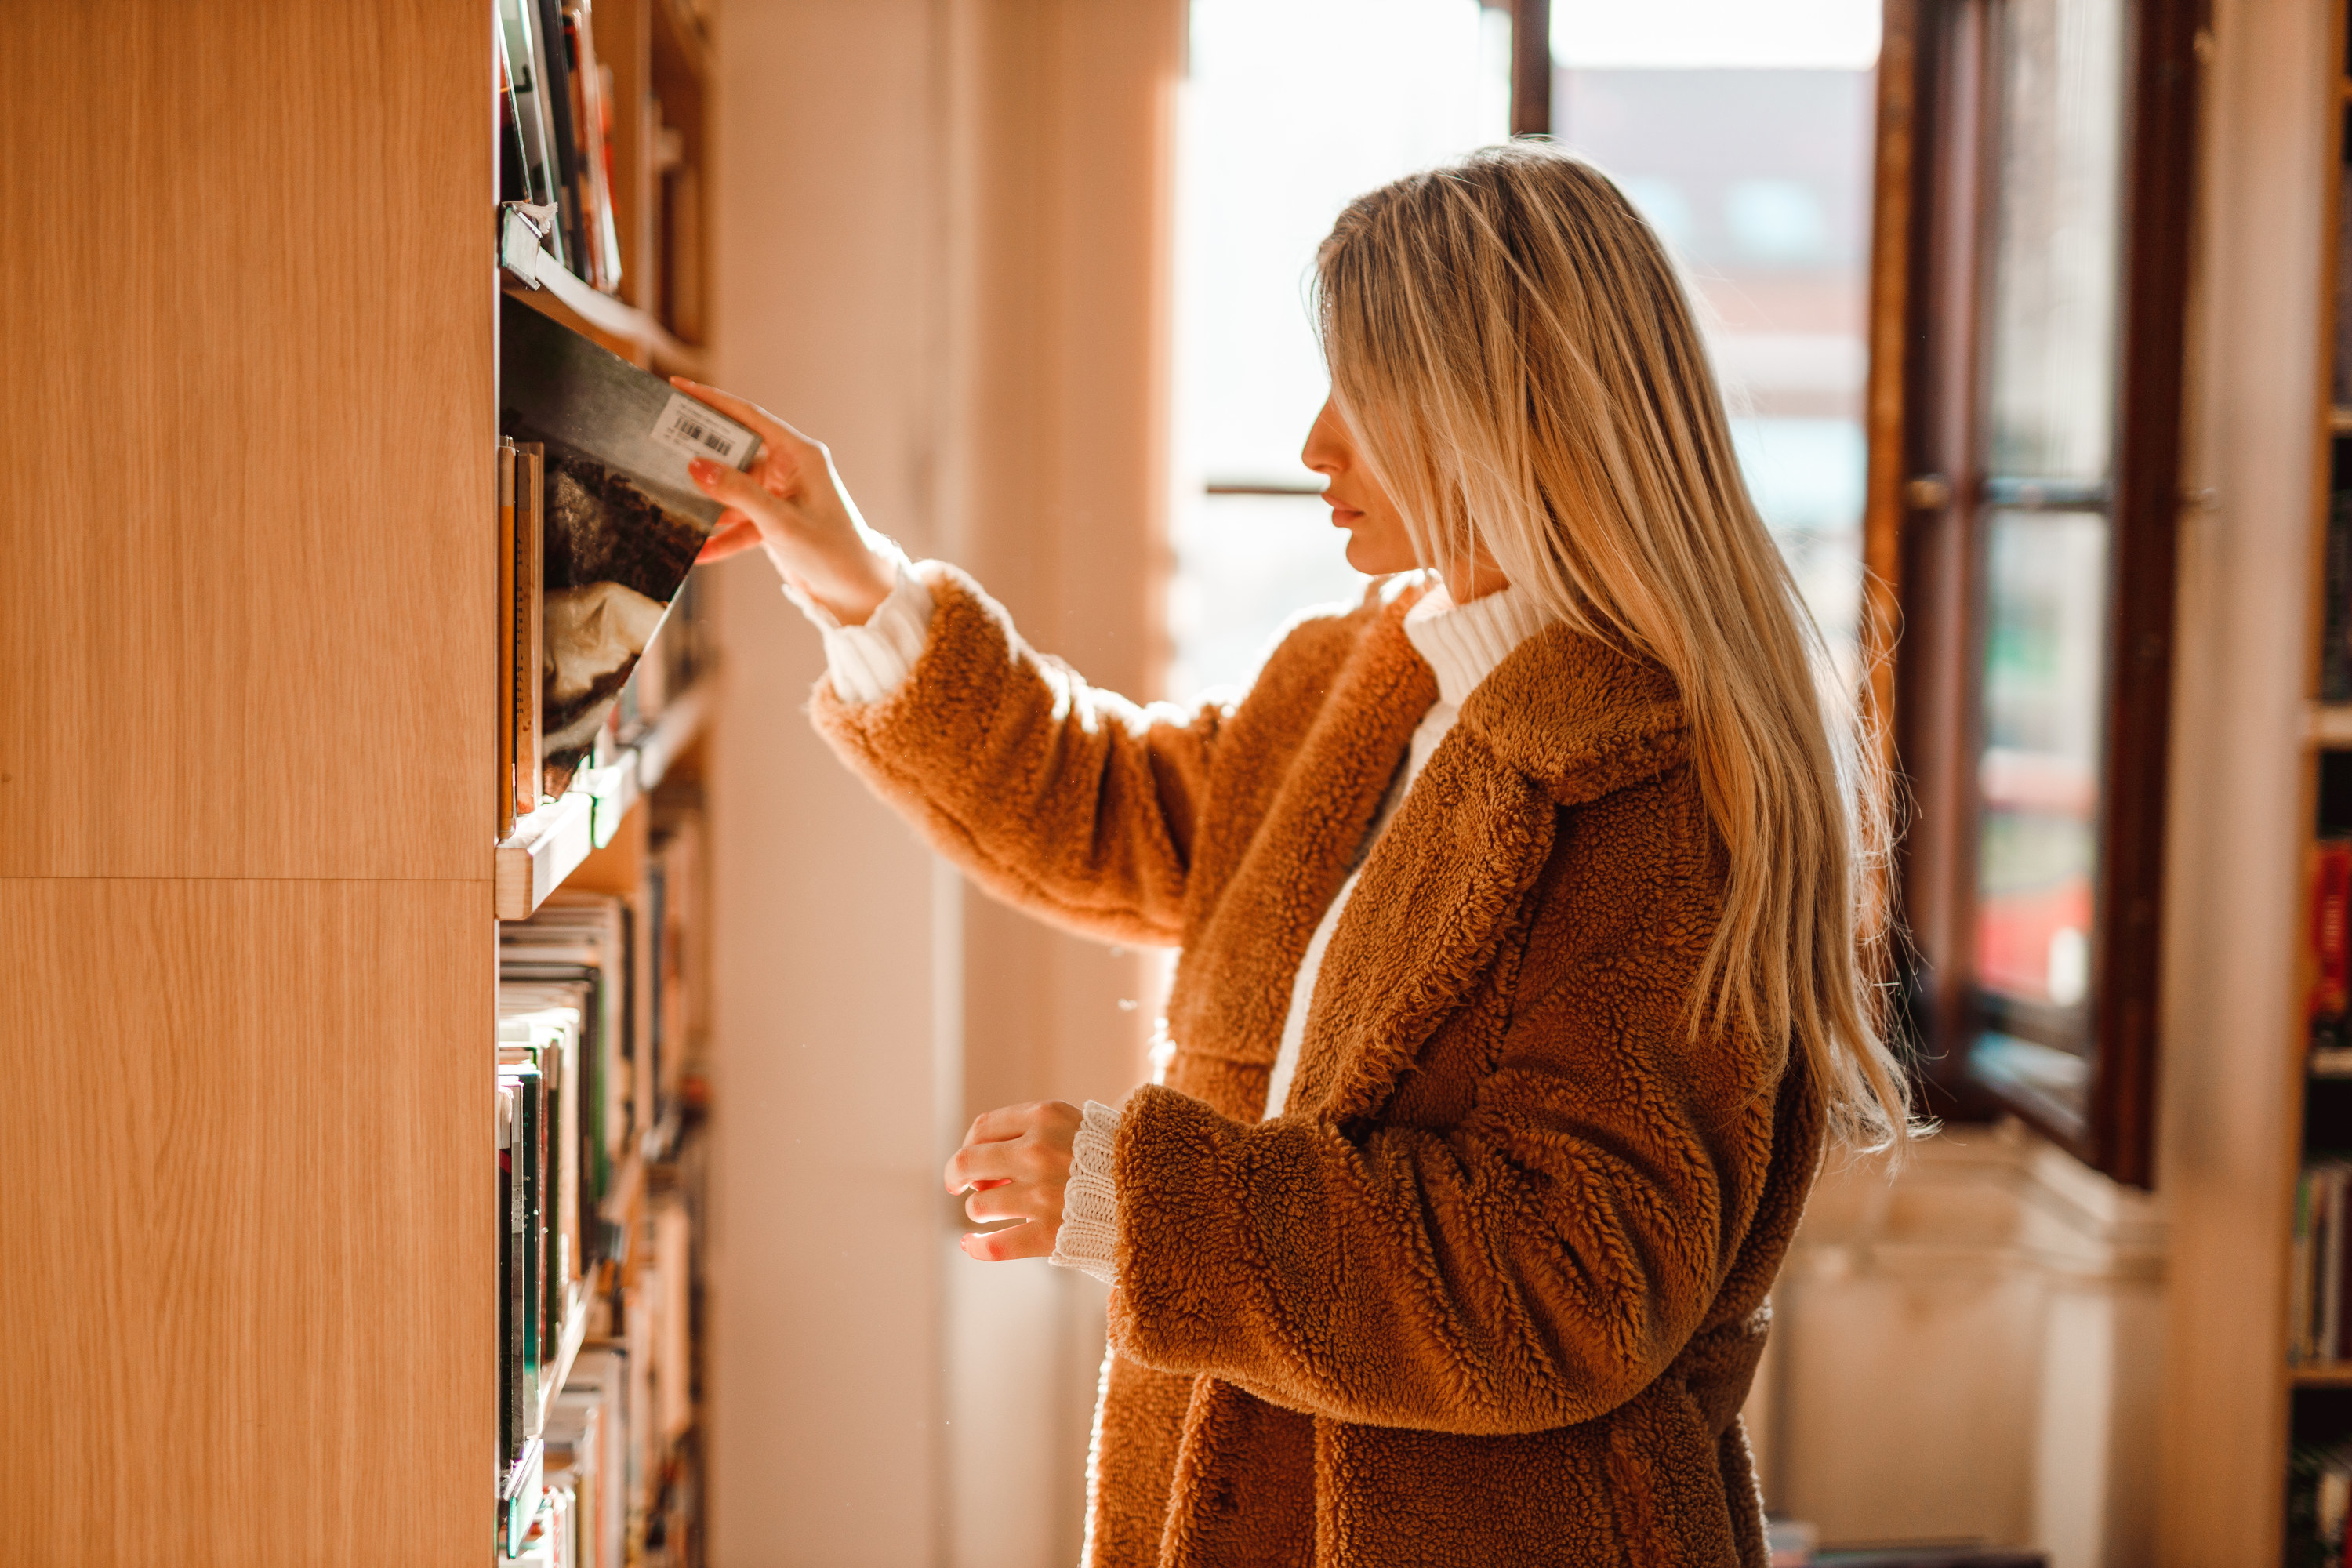 A woman at the library